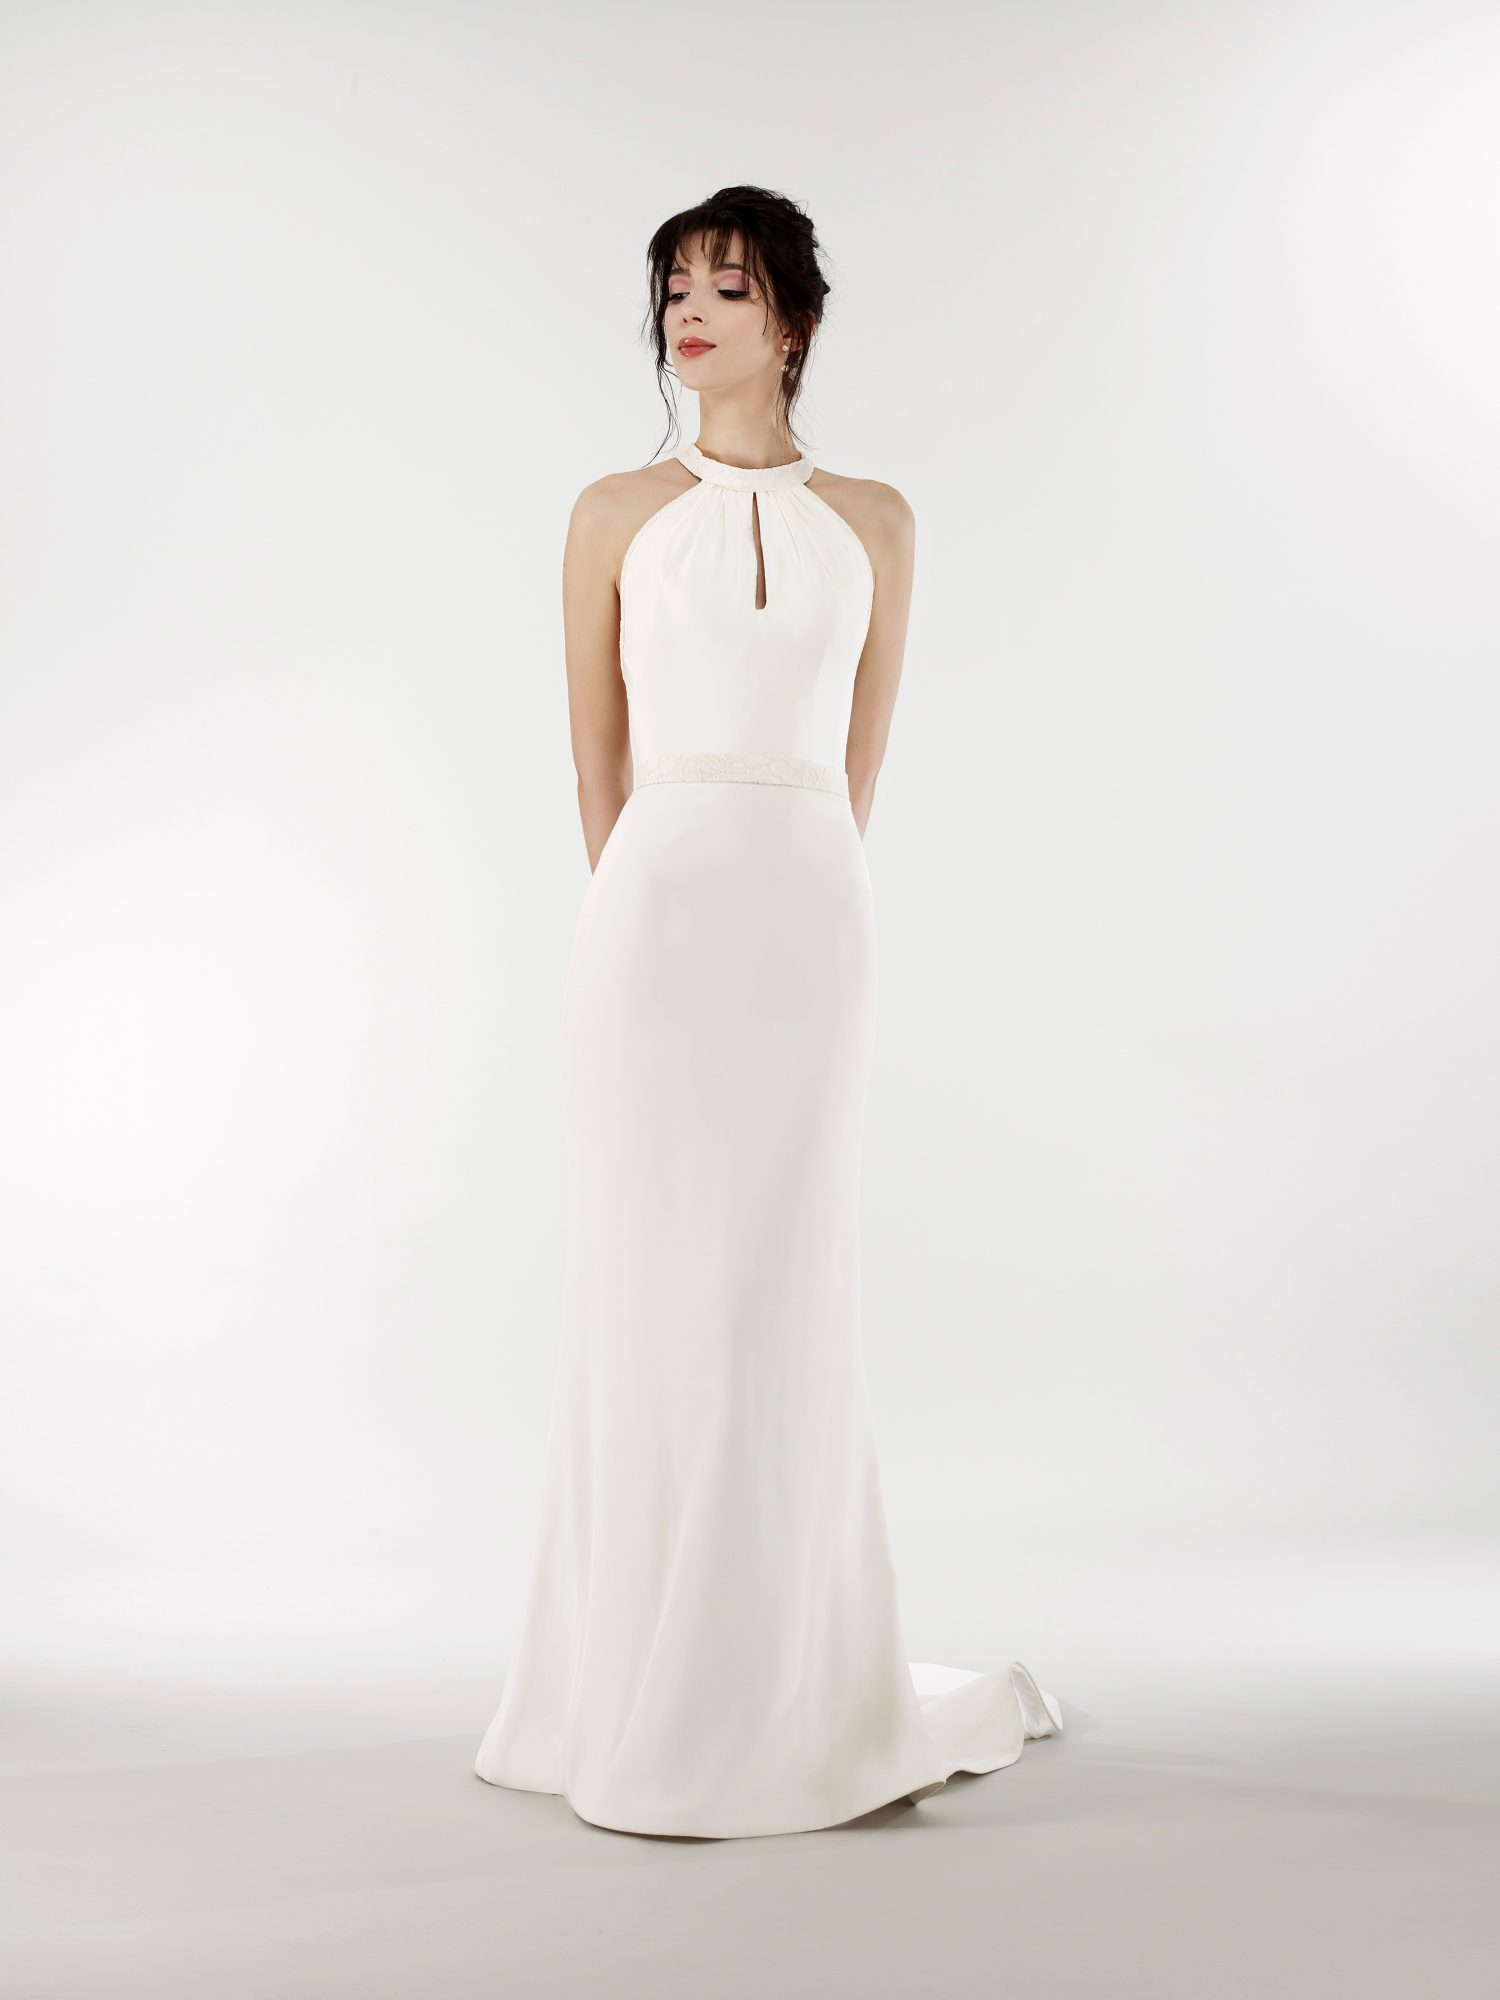 steven birnbaum bridal wedding dress spring 2019 keyhole halter